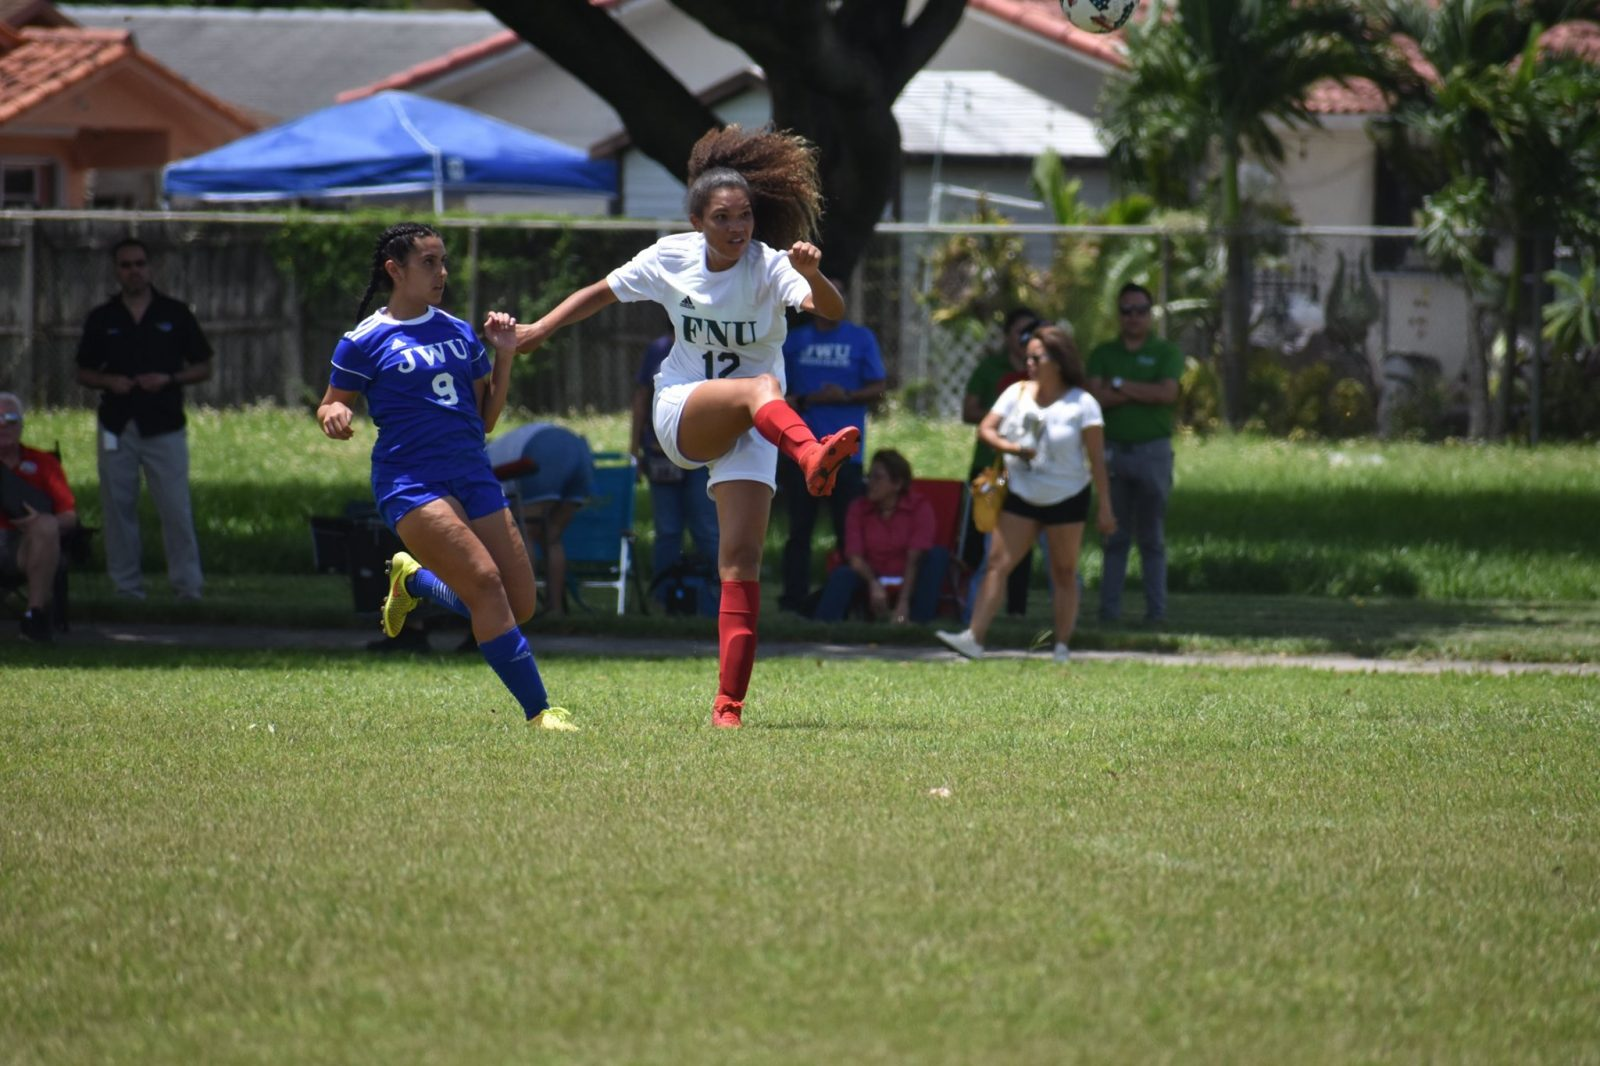 FNU player kicking the ball during the game